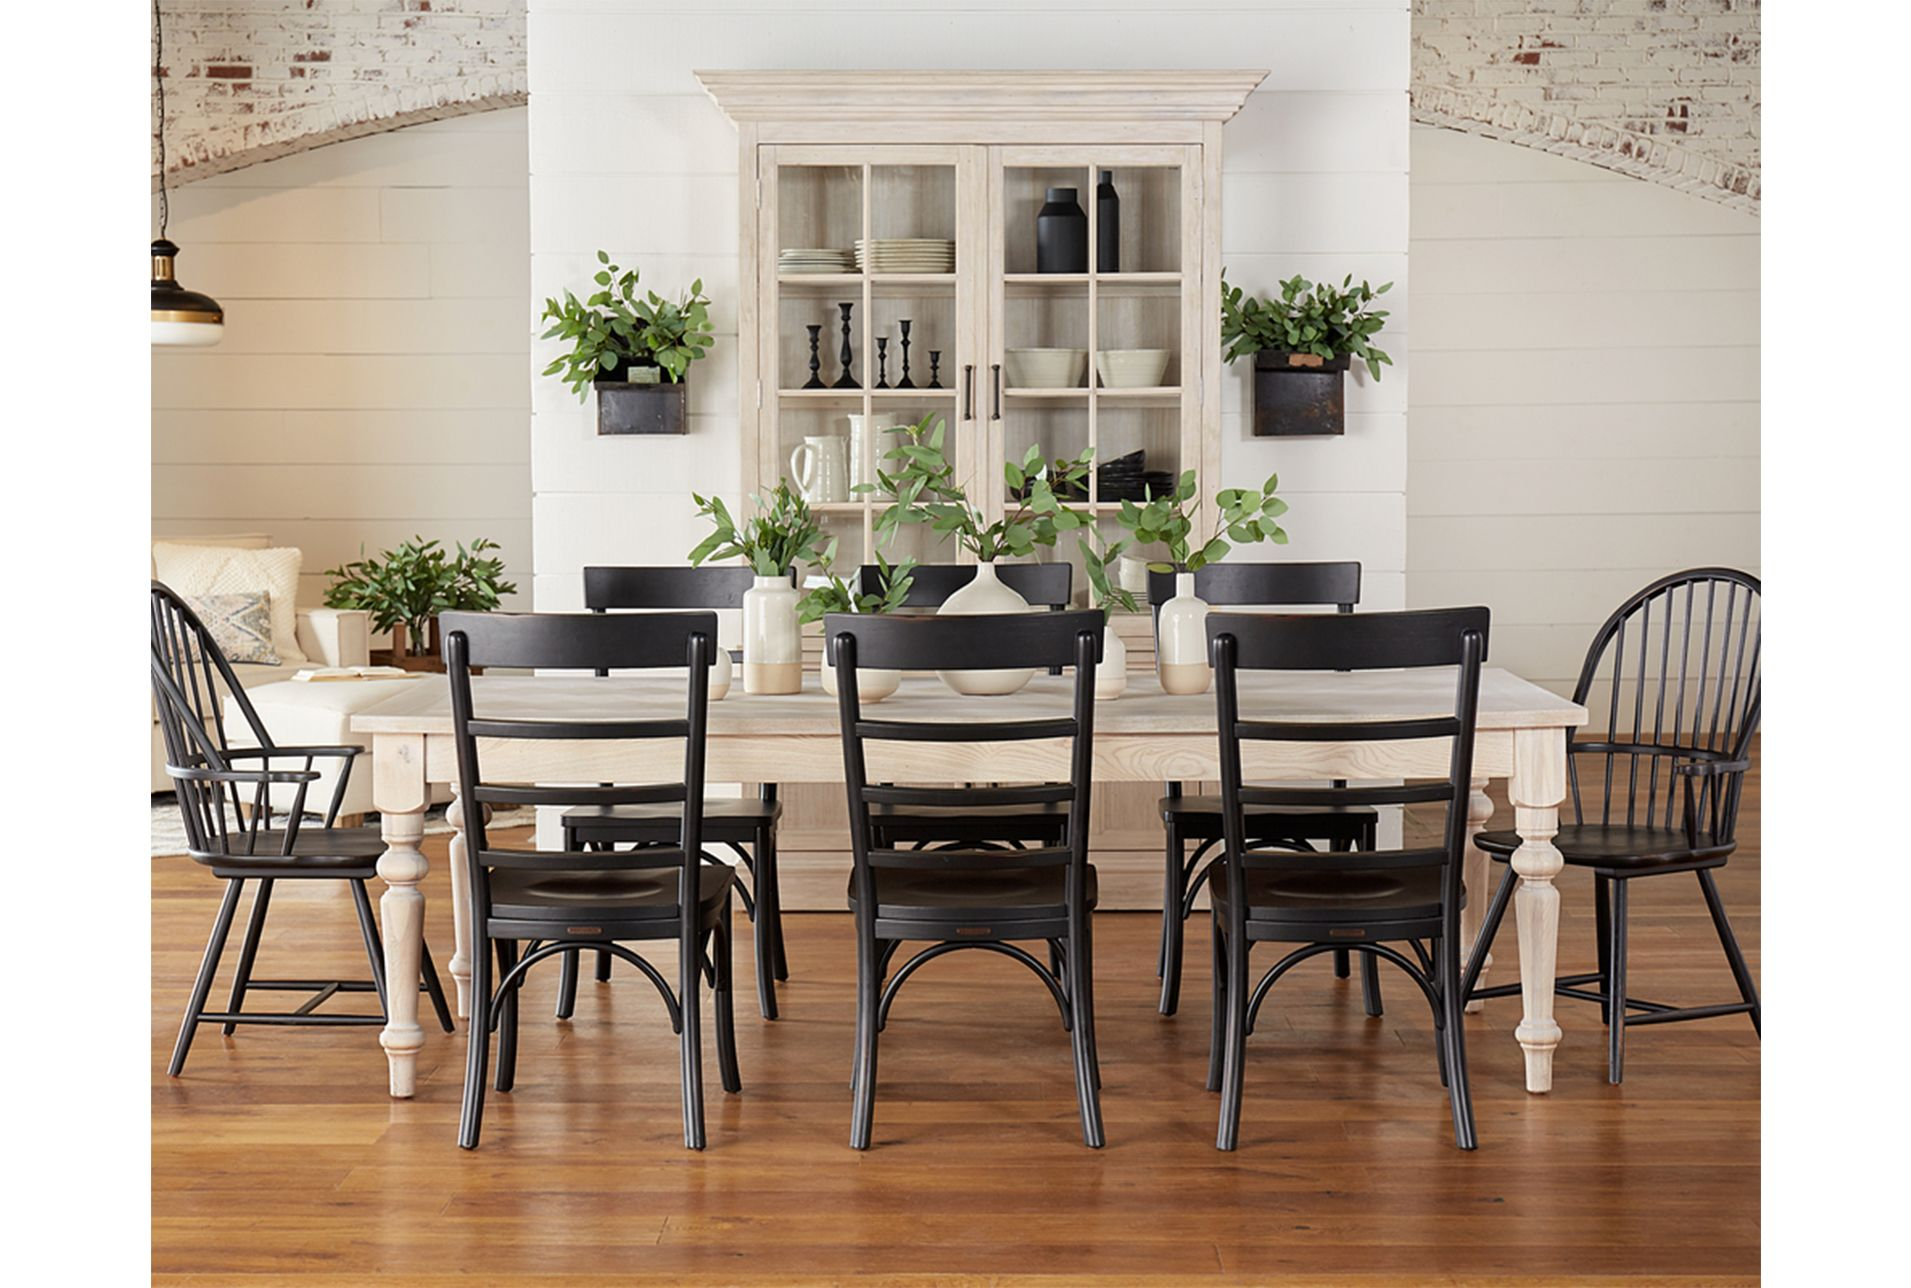 Magnolia Home Prairie Dining Table By Joanna Gaines Joanna